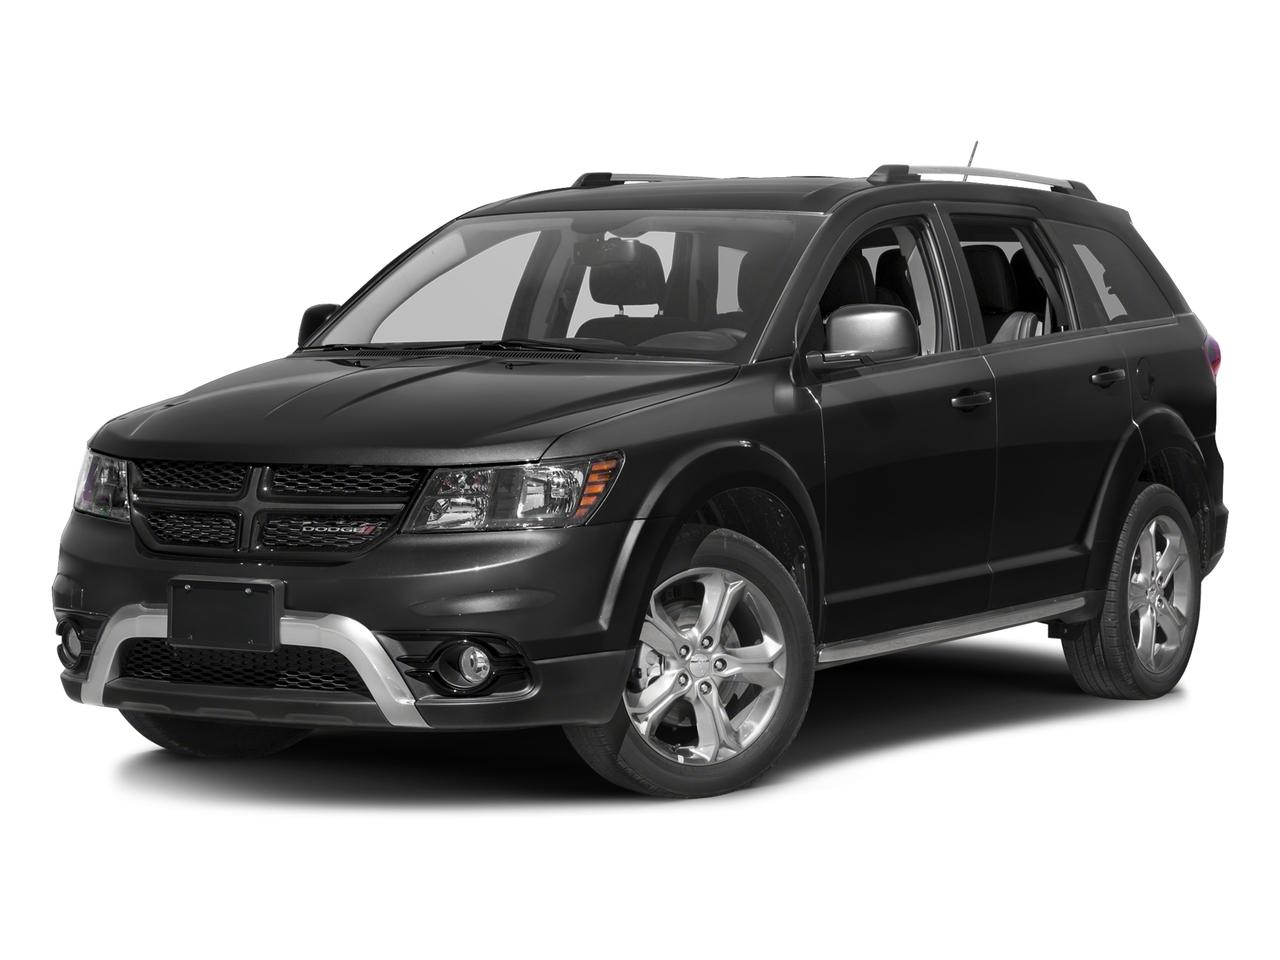 2017 Dodge Journey Vehicle Photo in Killeen, TX 76541